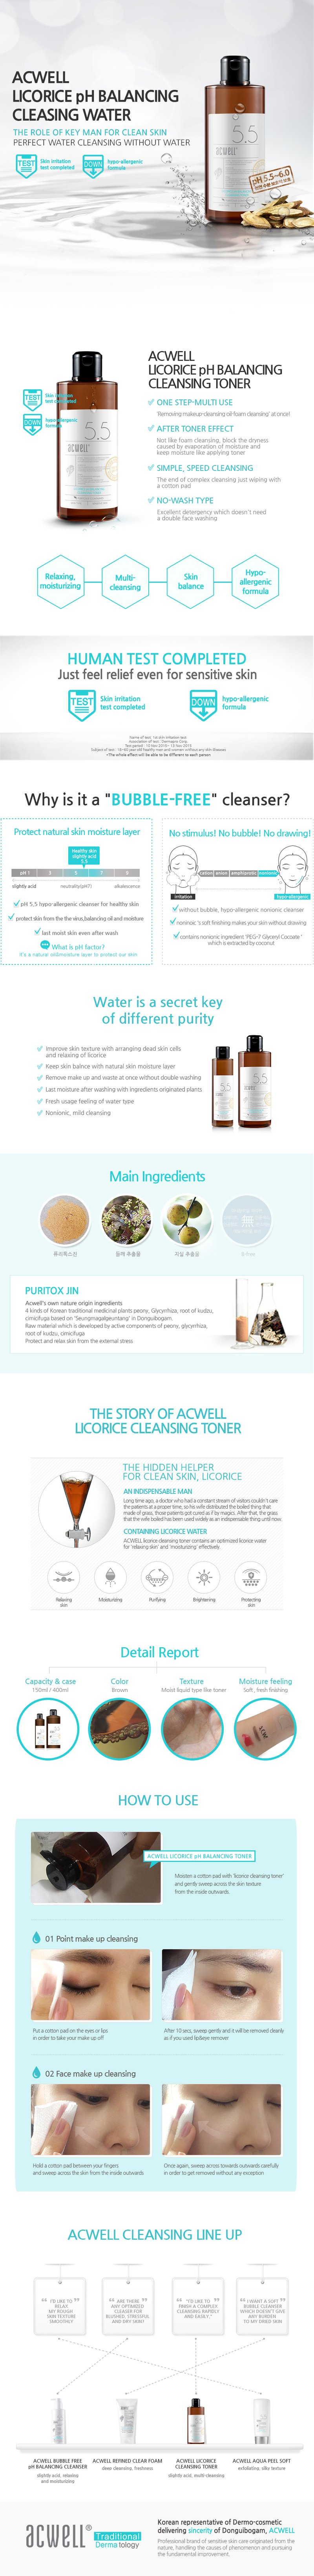 Acwell Licorice pH Balancing Cleansing Toner Description